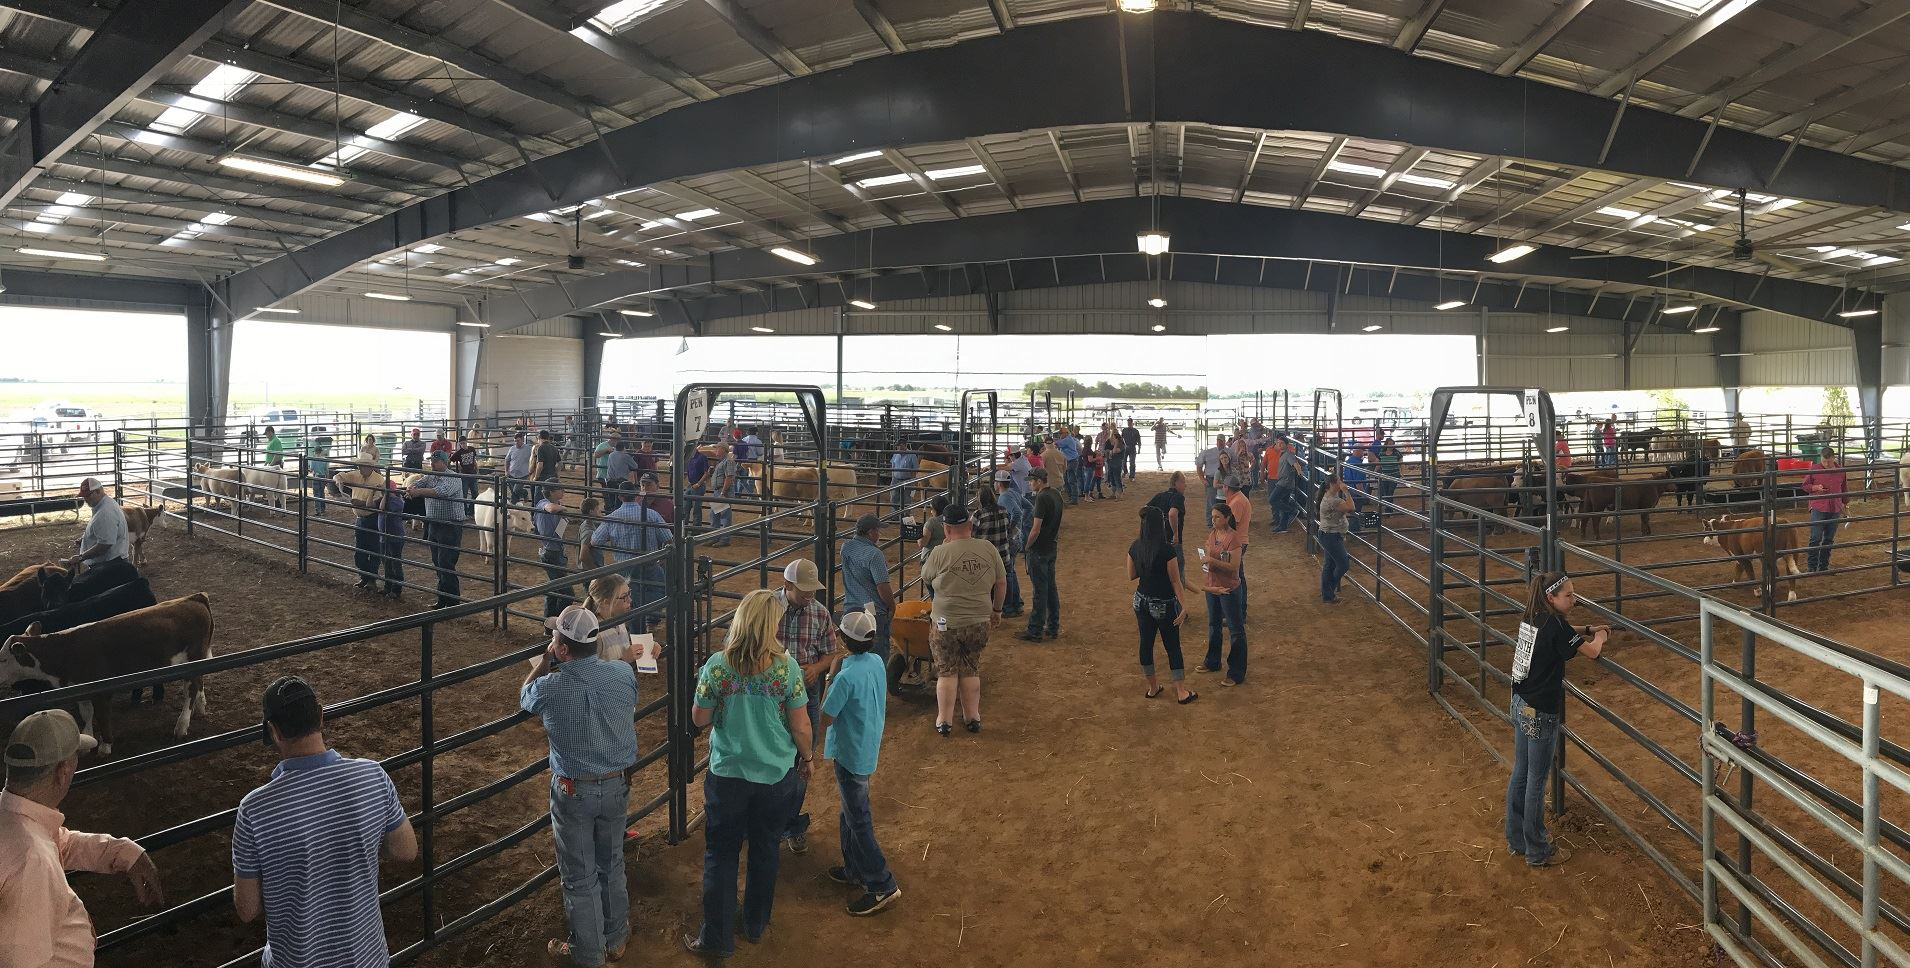 Covered warmup arena with cattle pins set up for a cattle action. People looking at cattle through fence